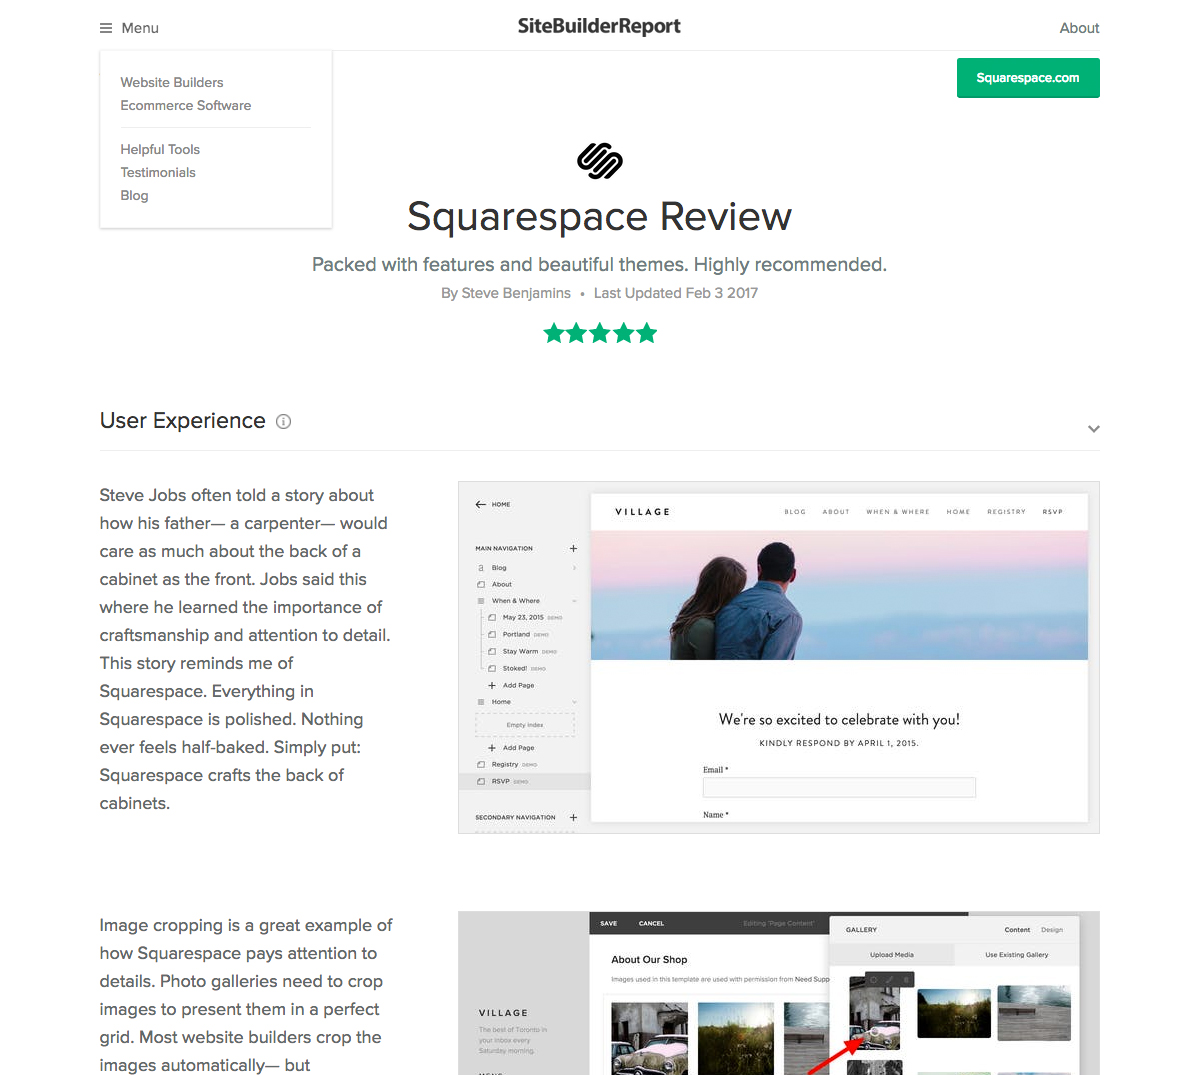 SBR's Editorial on Squarespace